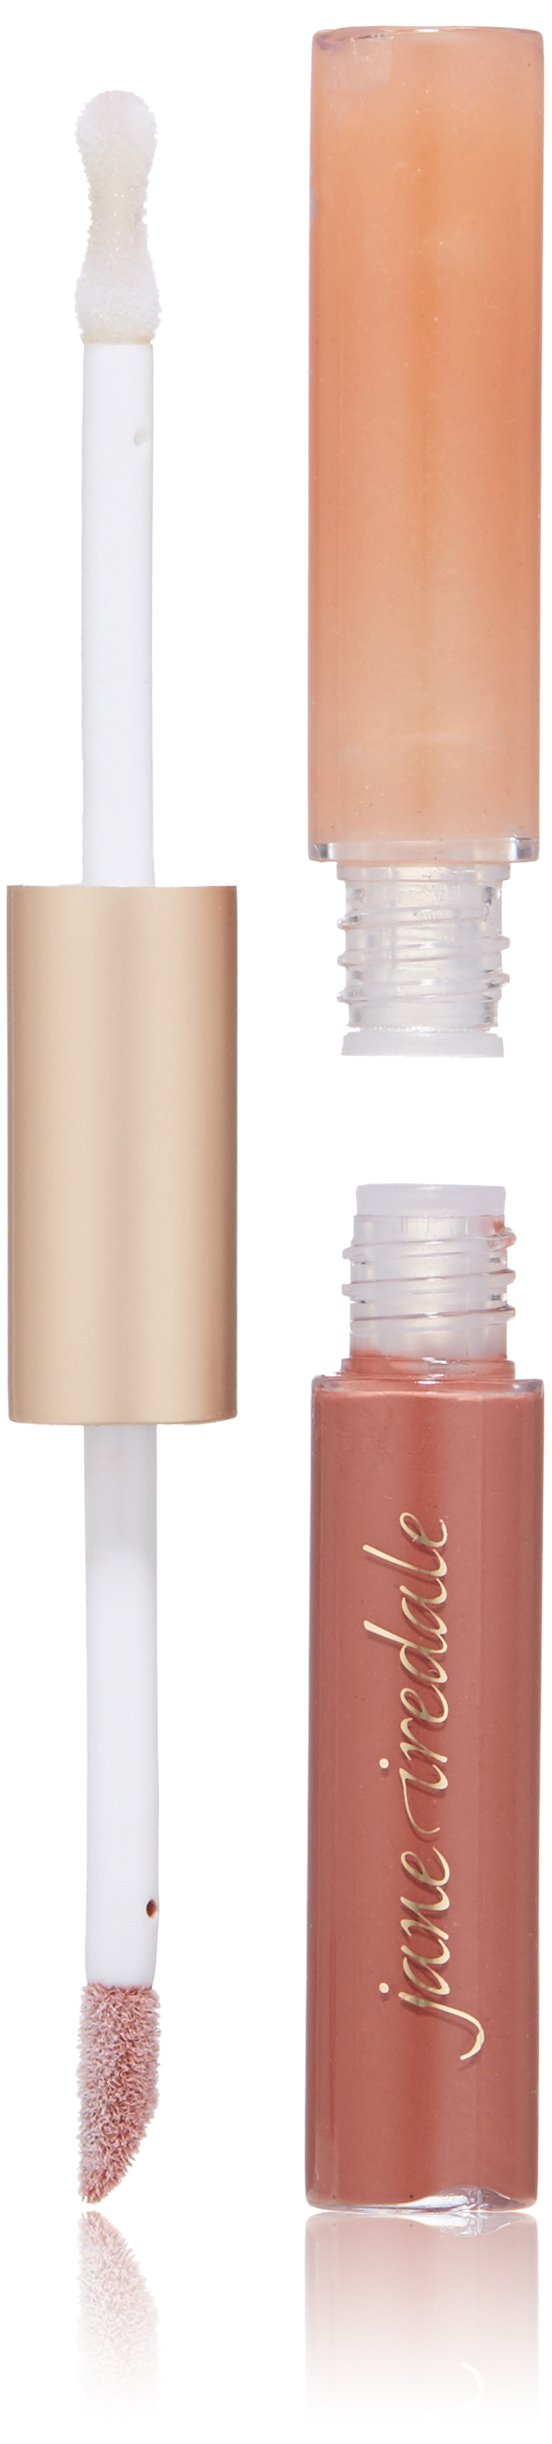 jane iredale Lip Fixation Lip Stain/Gloss